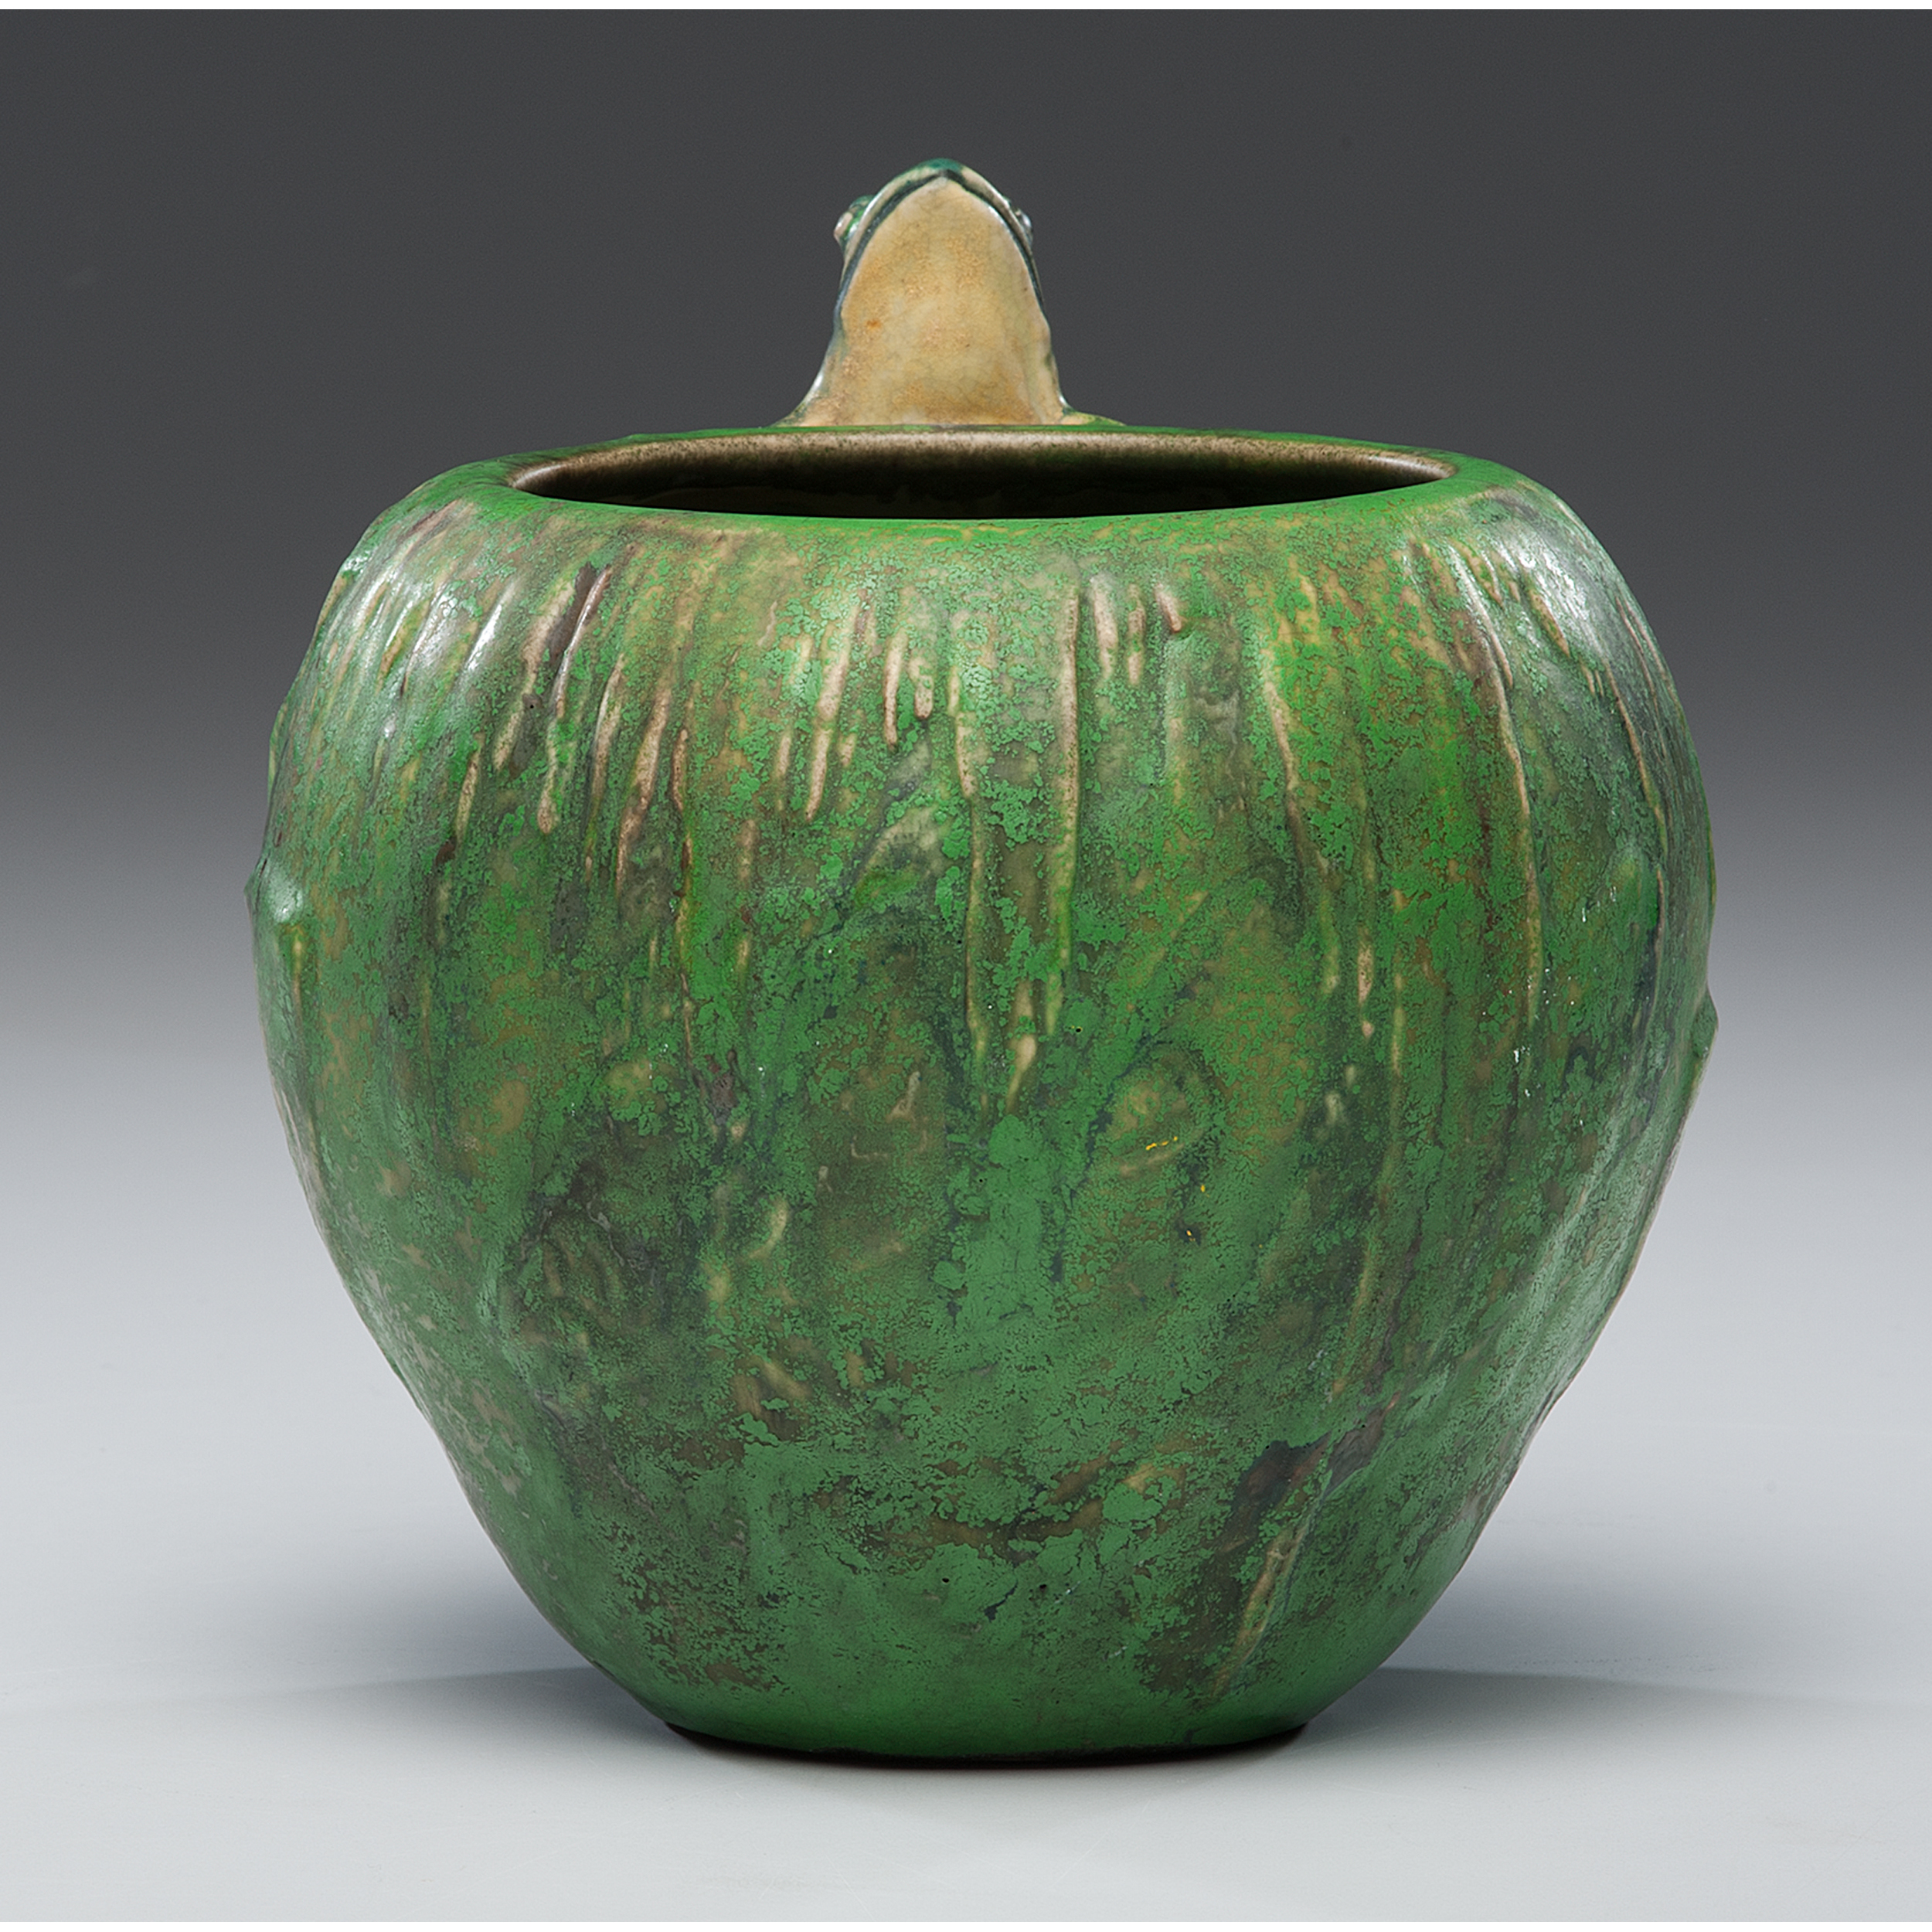 Auctions In Ohio >> Weller Coppertone Single Frog Vase | Cowan's Auction House: The Midwest's Most Trusted Auction ...